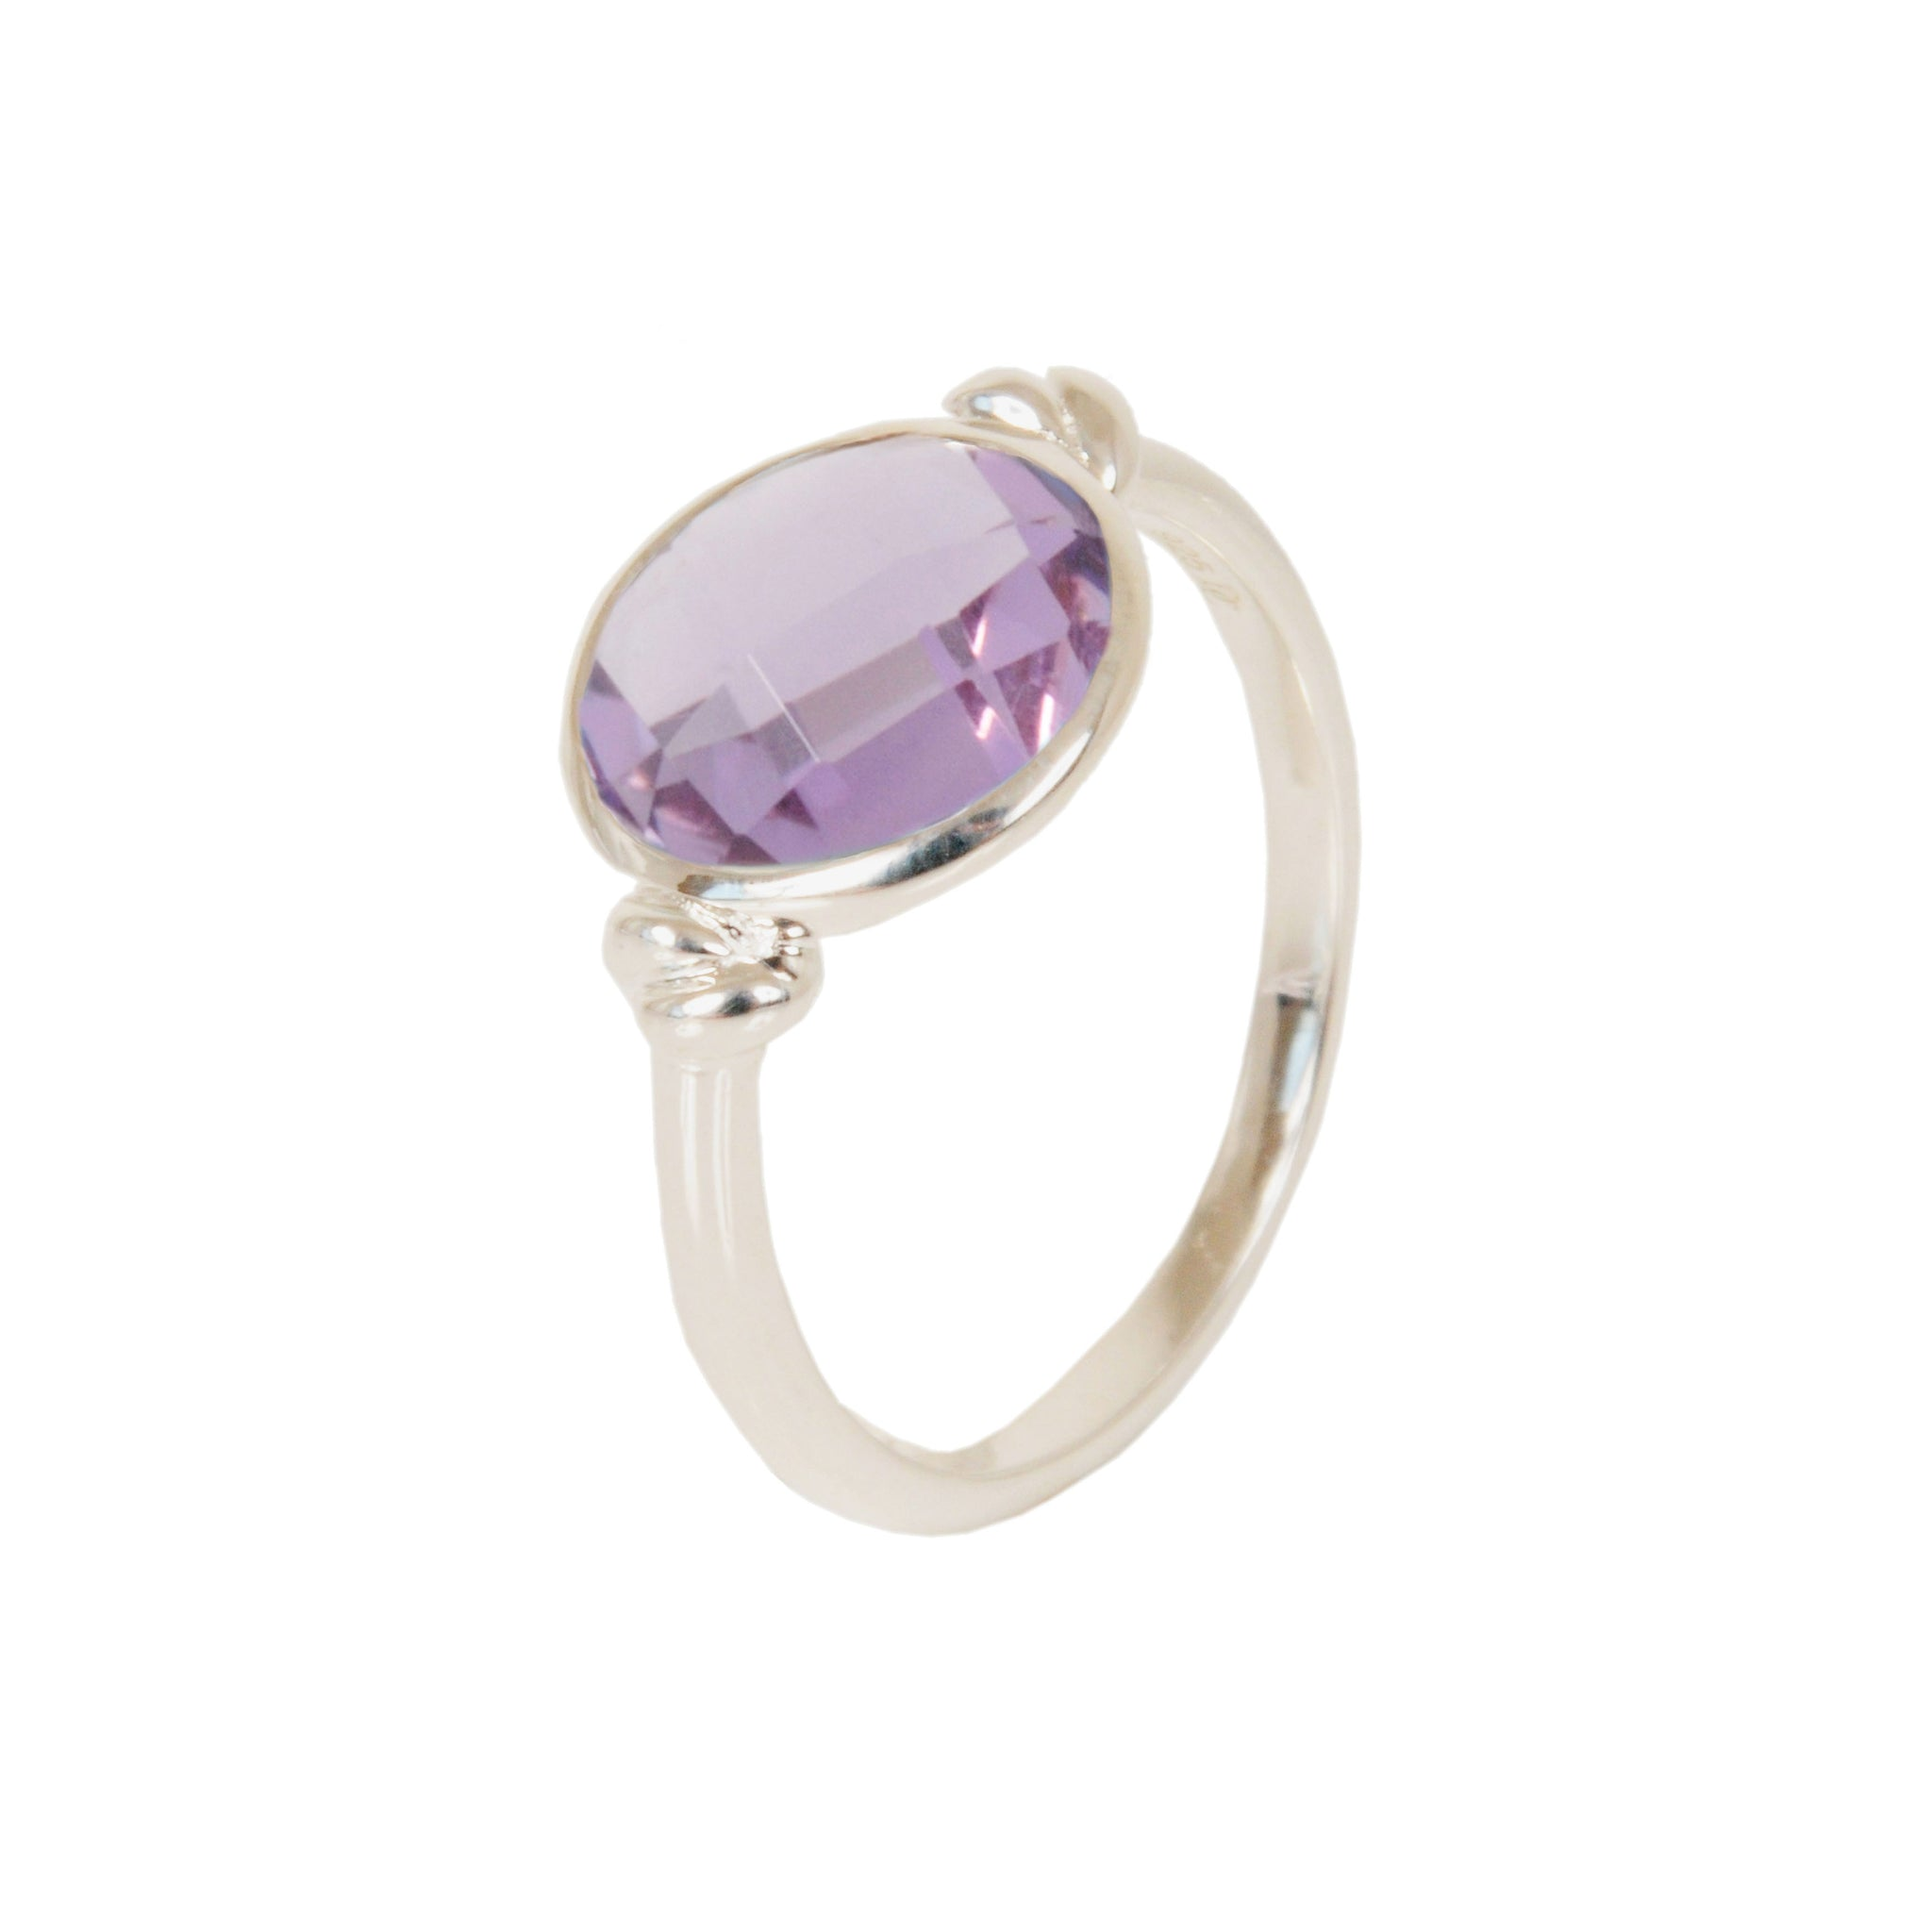 DAVINA COMBE - KNOT RING WITH AMETHYST